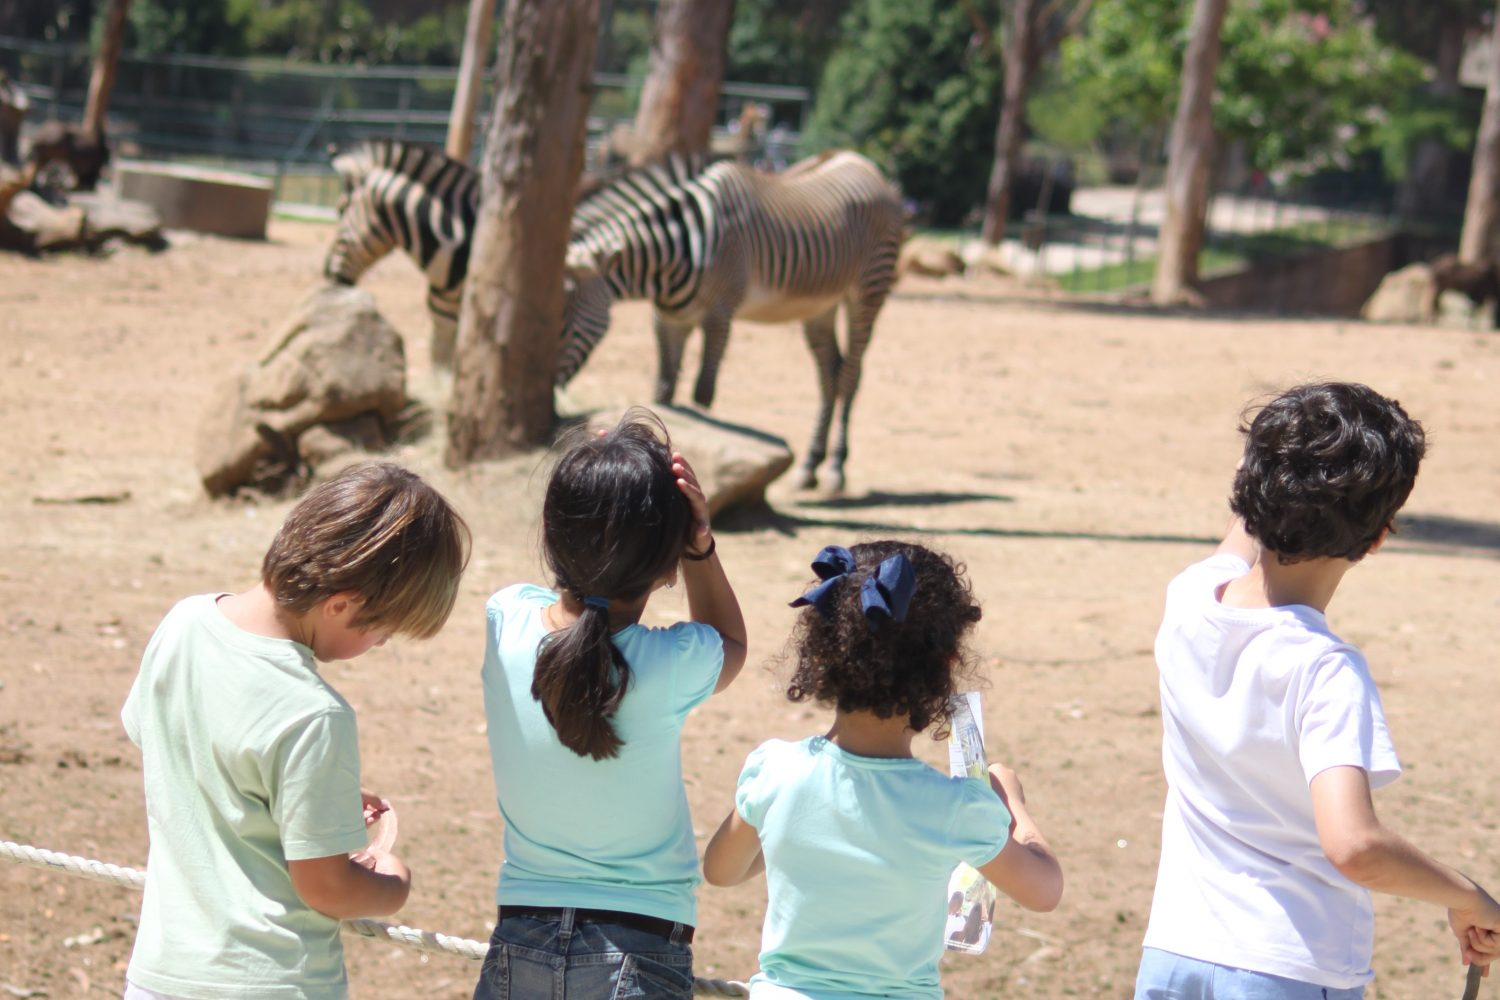 Watching the zebras at Zoo santo inacio Porto